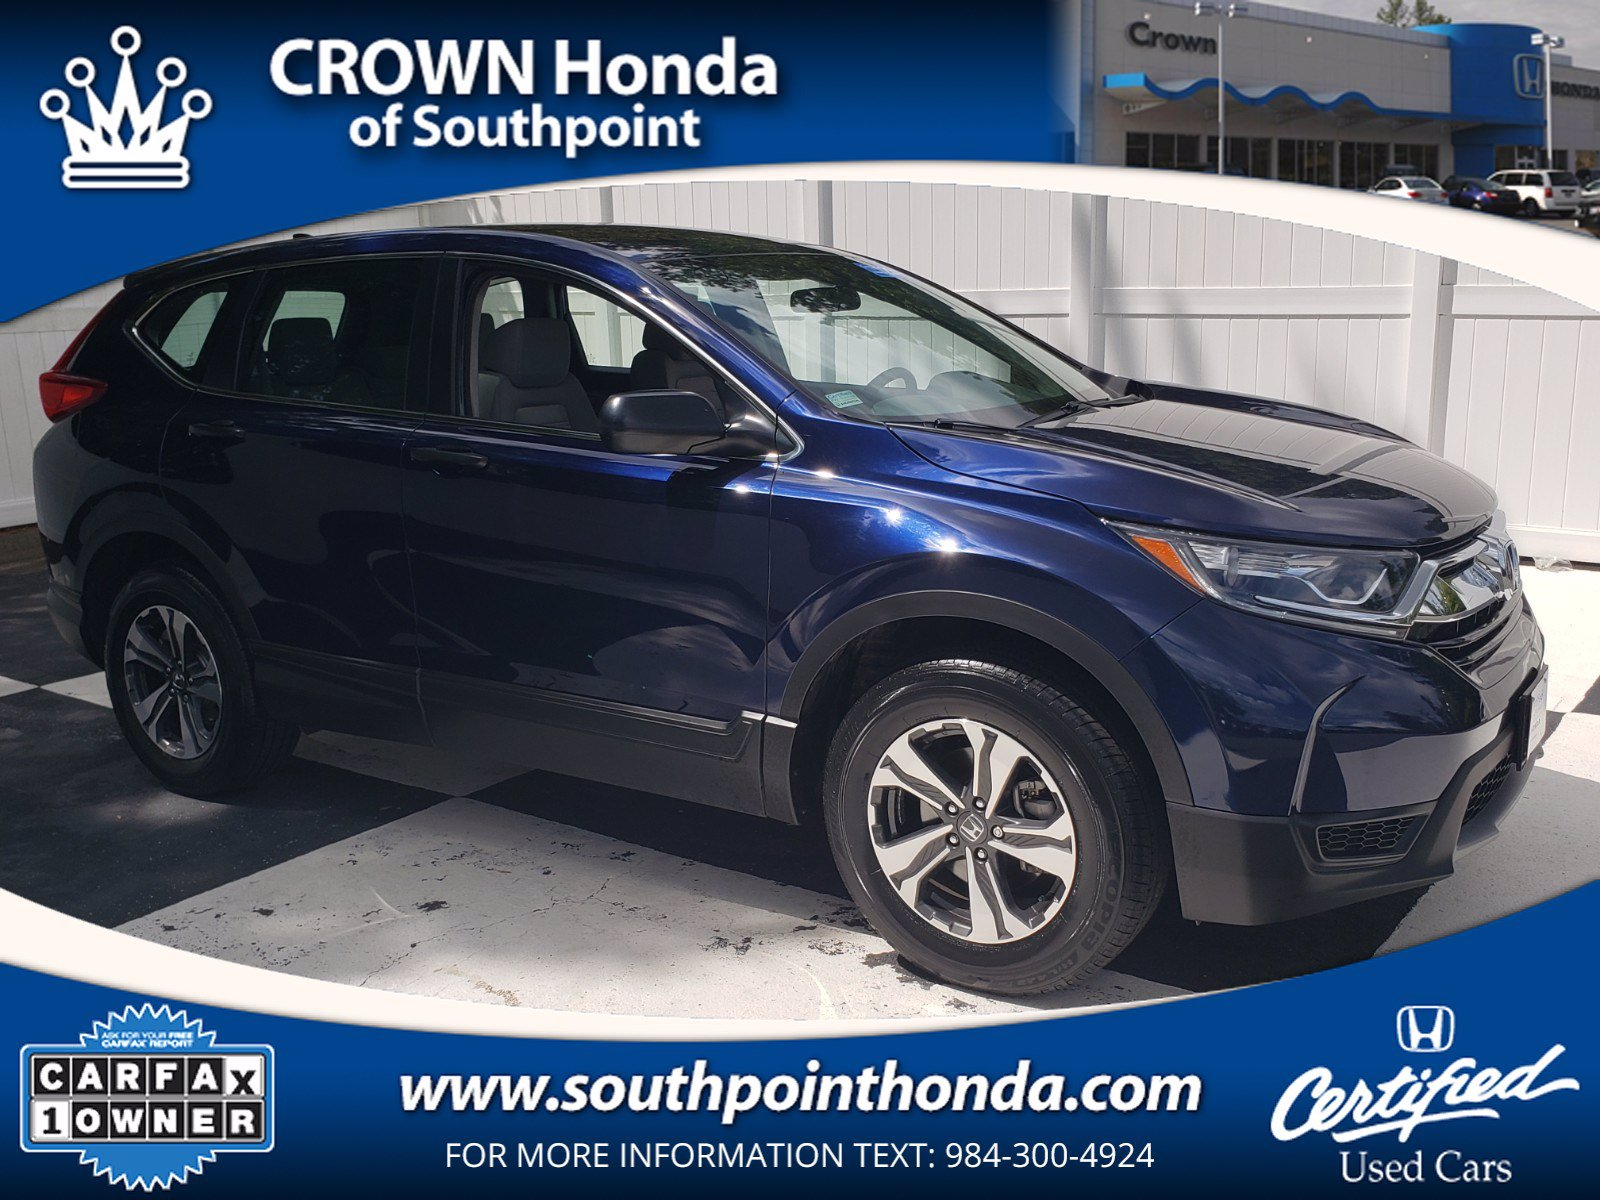 used honda dealership durham used honda civic accord cr v more used honda dealership durham used